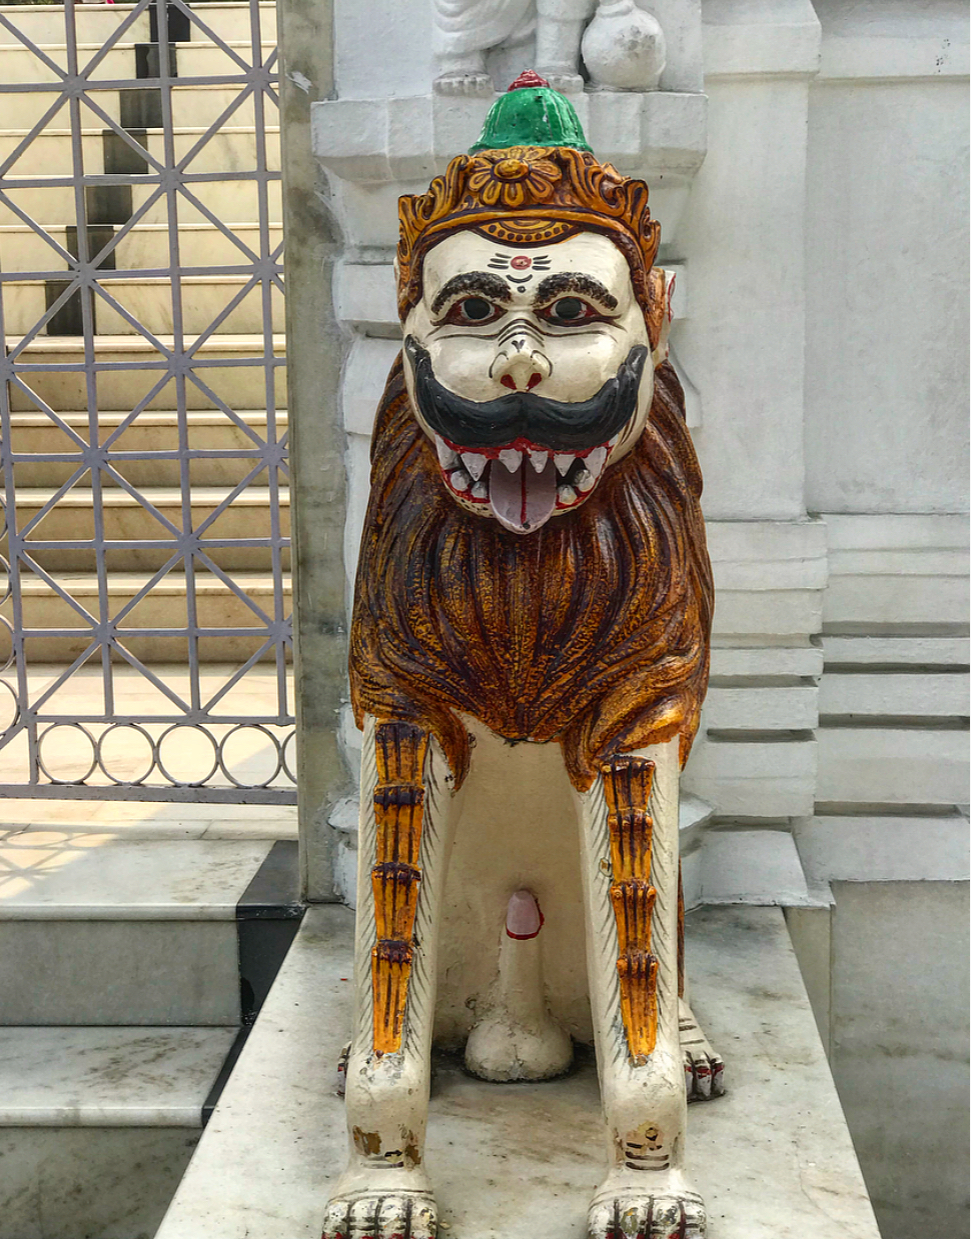 An interesting statue outside one of the temples in   New Delhi.